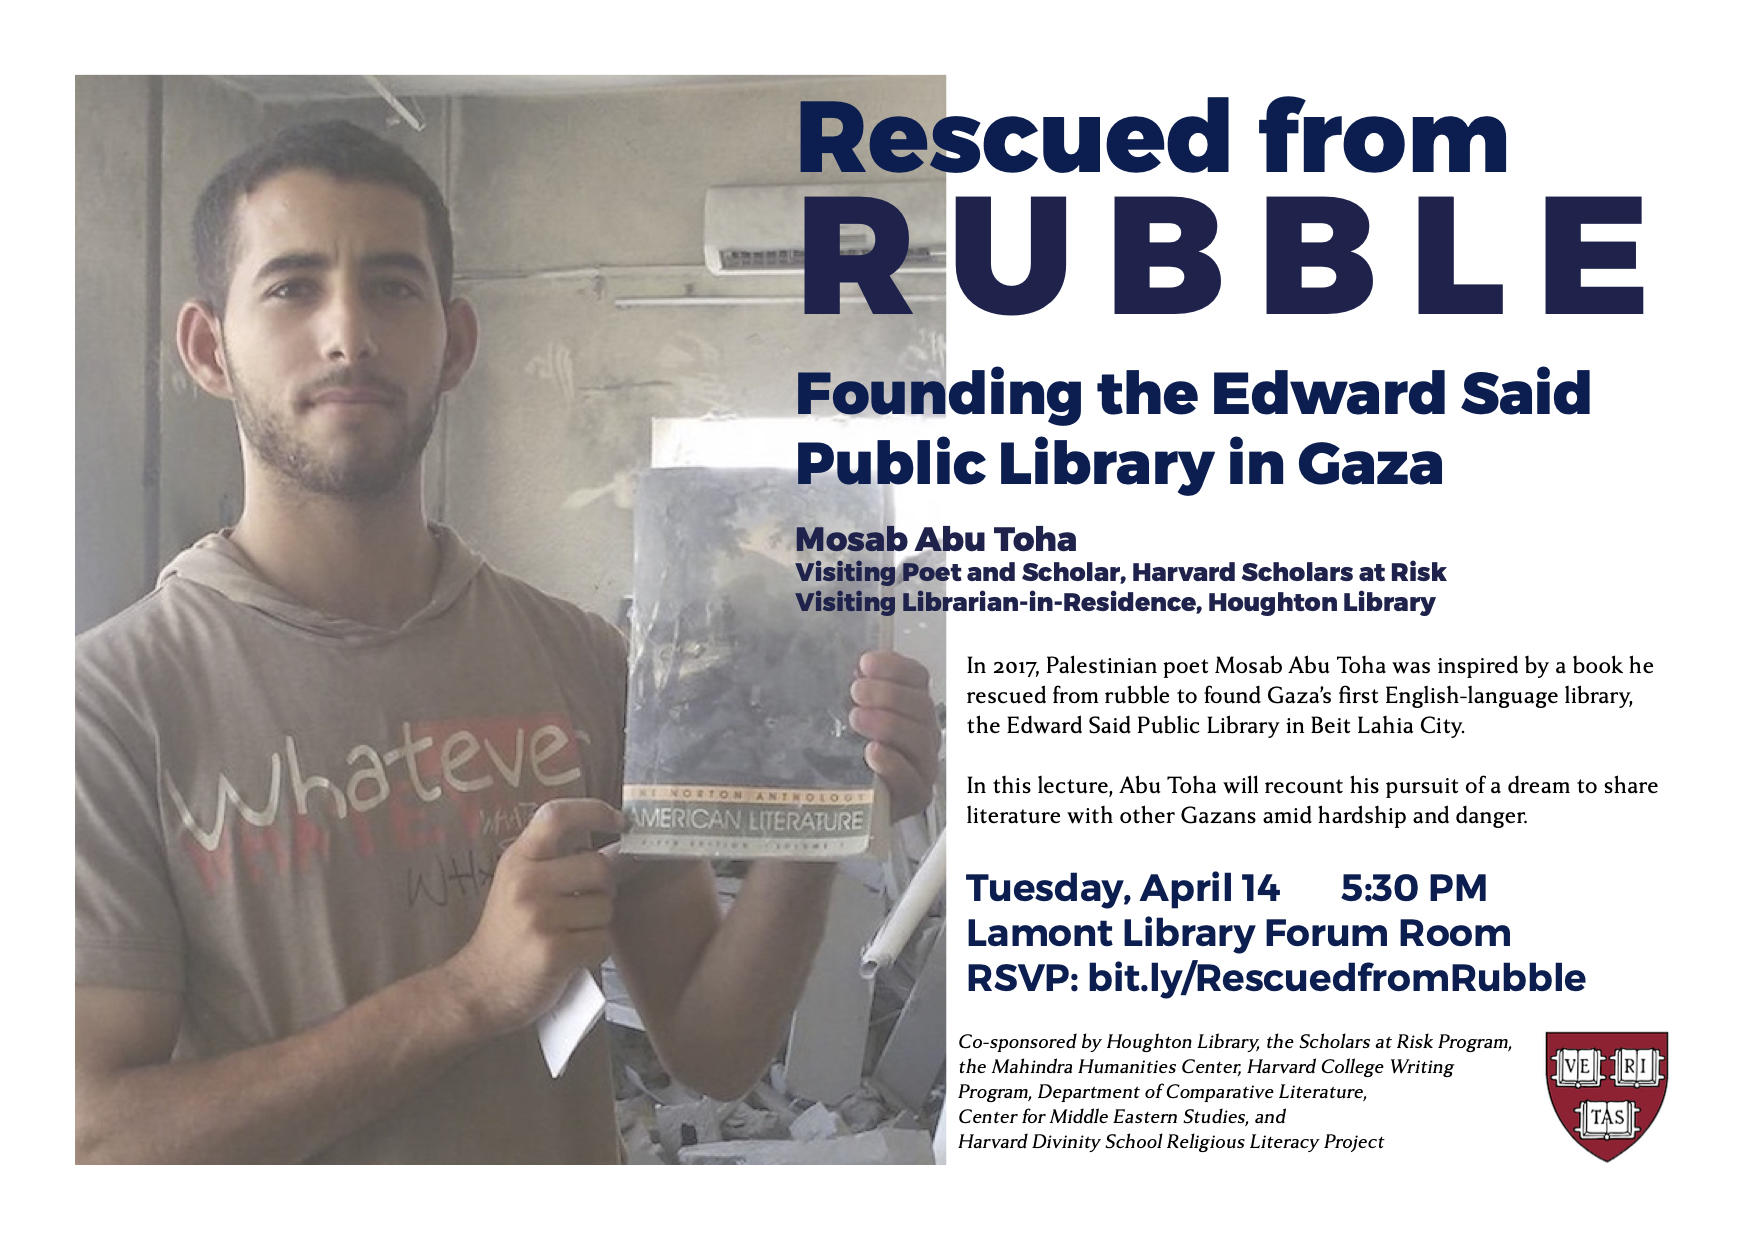 Rescued from Rubble flyer